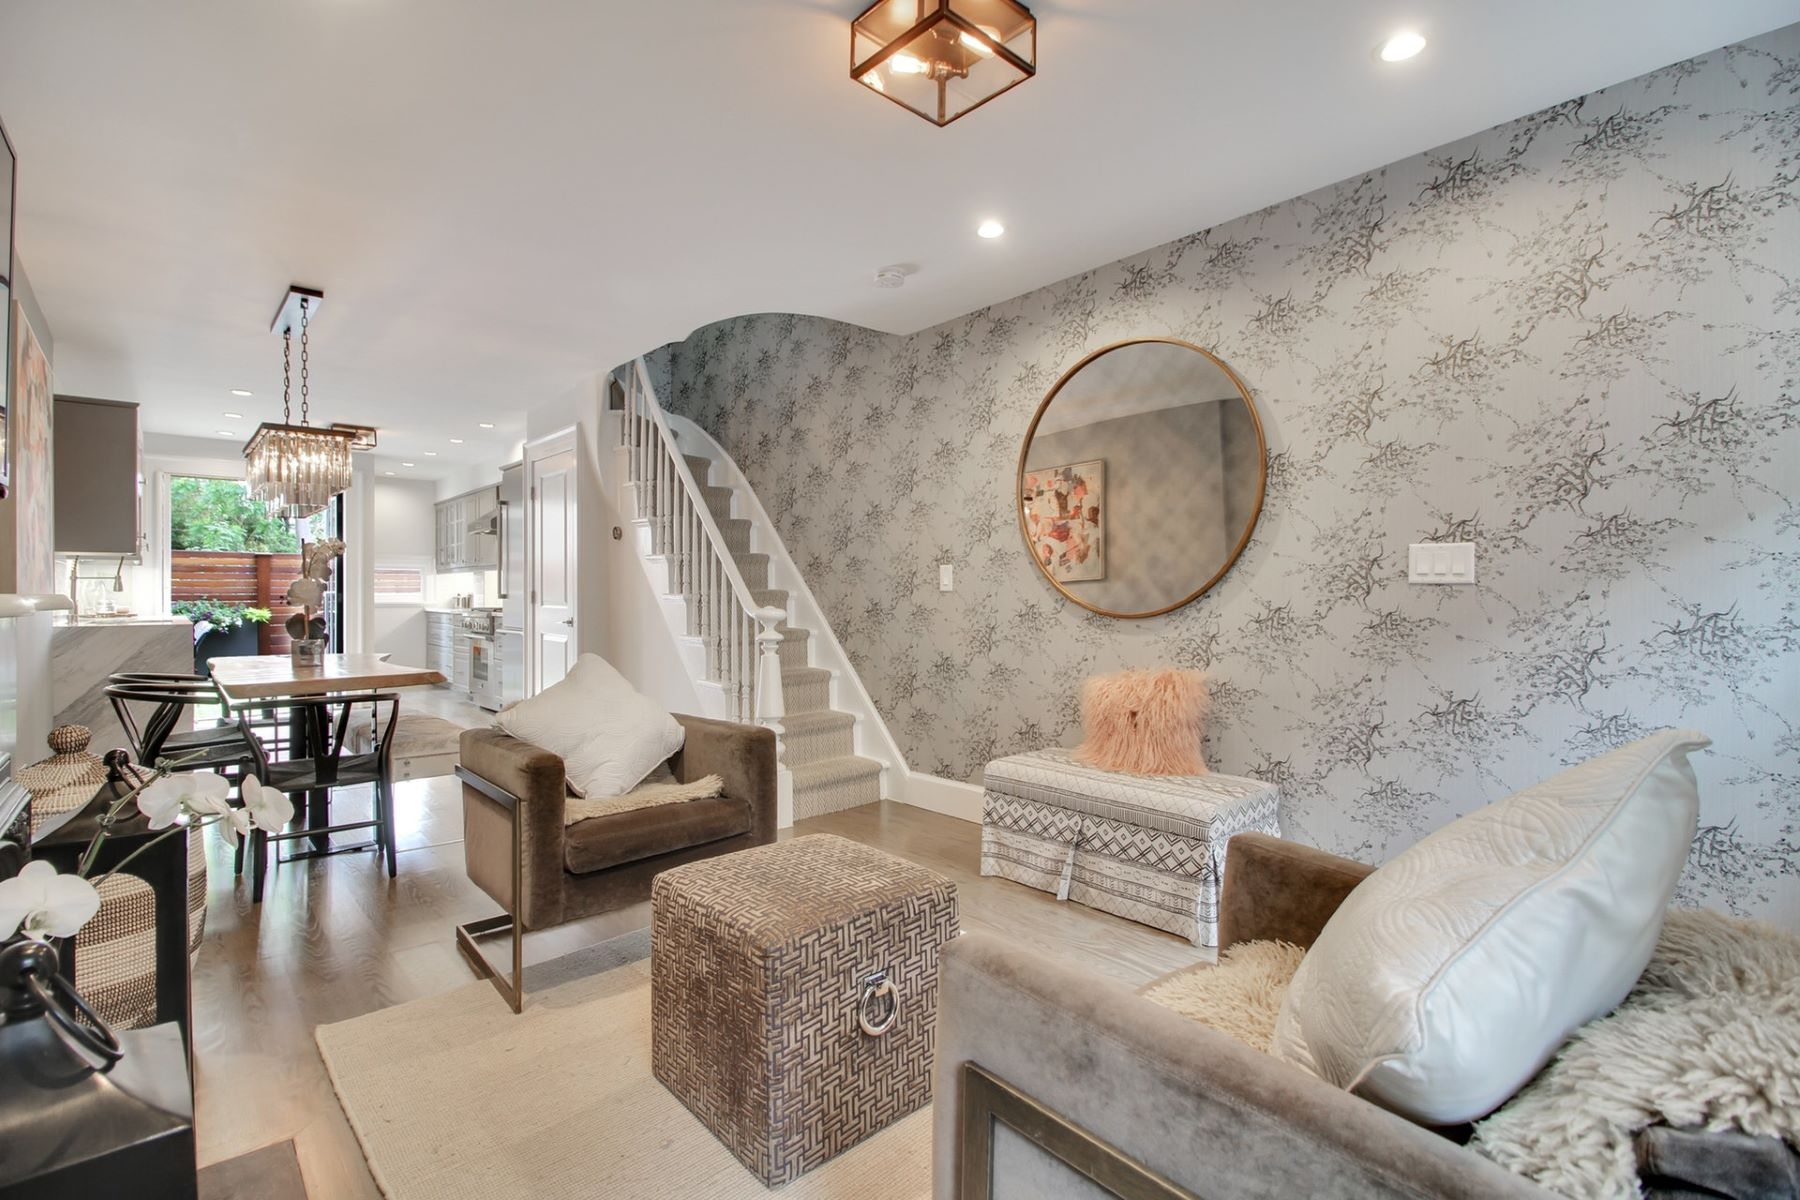 Single Family Home for Sale at Reside in Luxury & Entertain in Style! 161.5 Coles St Jersey City, New Jersey 07302 United States